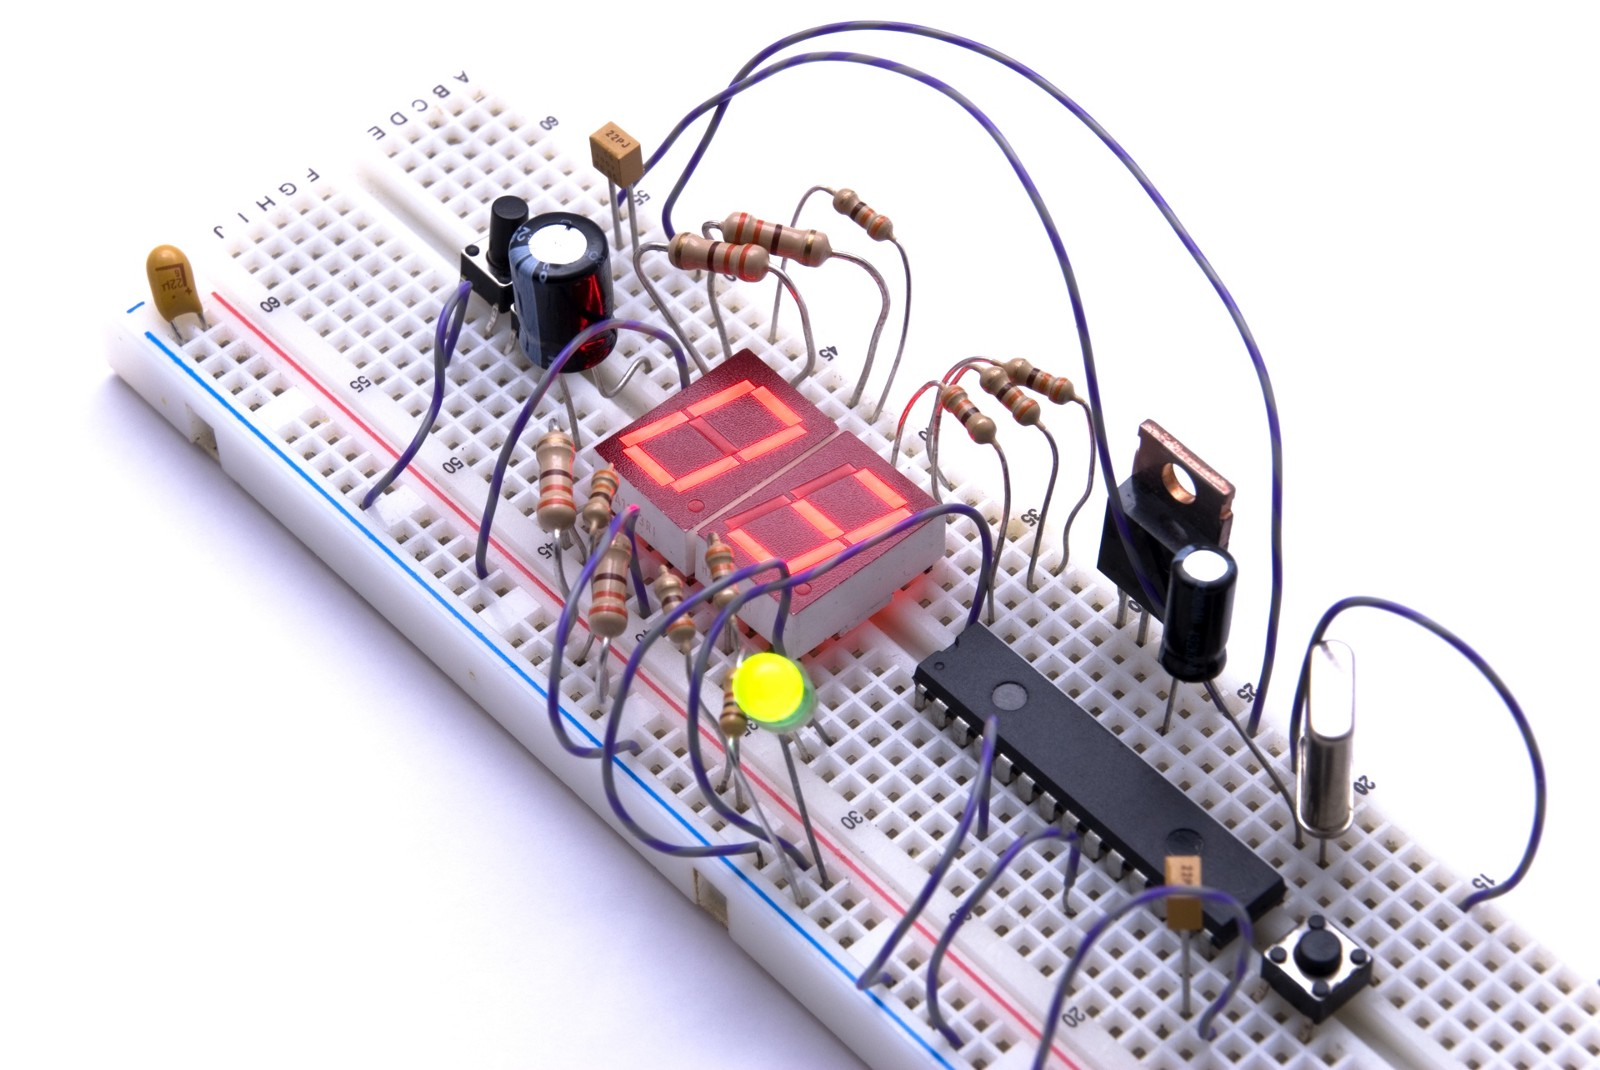 A Guide To Building Hardware Prototype London Tech Startups Medium Kickstarter Circuit Scribe Typical Breadboard Much Easier Than Soldering But Could Still Be Improved